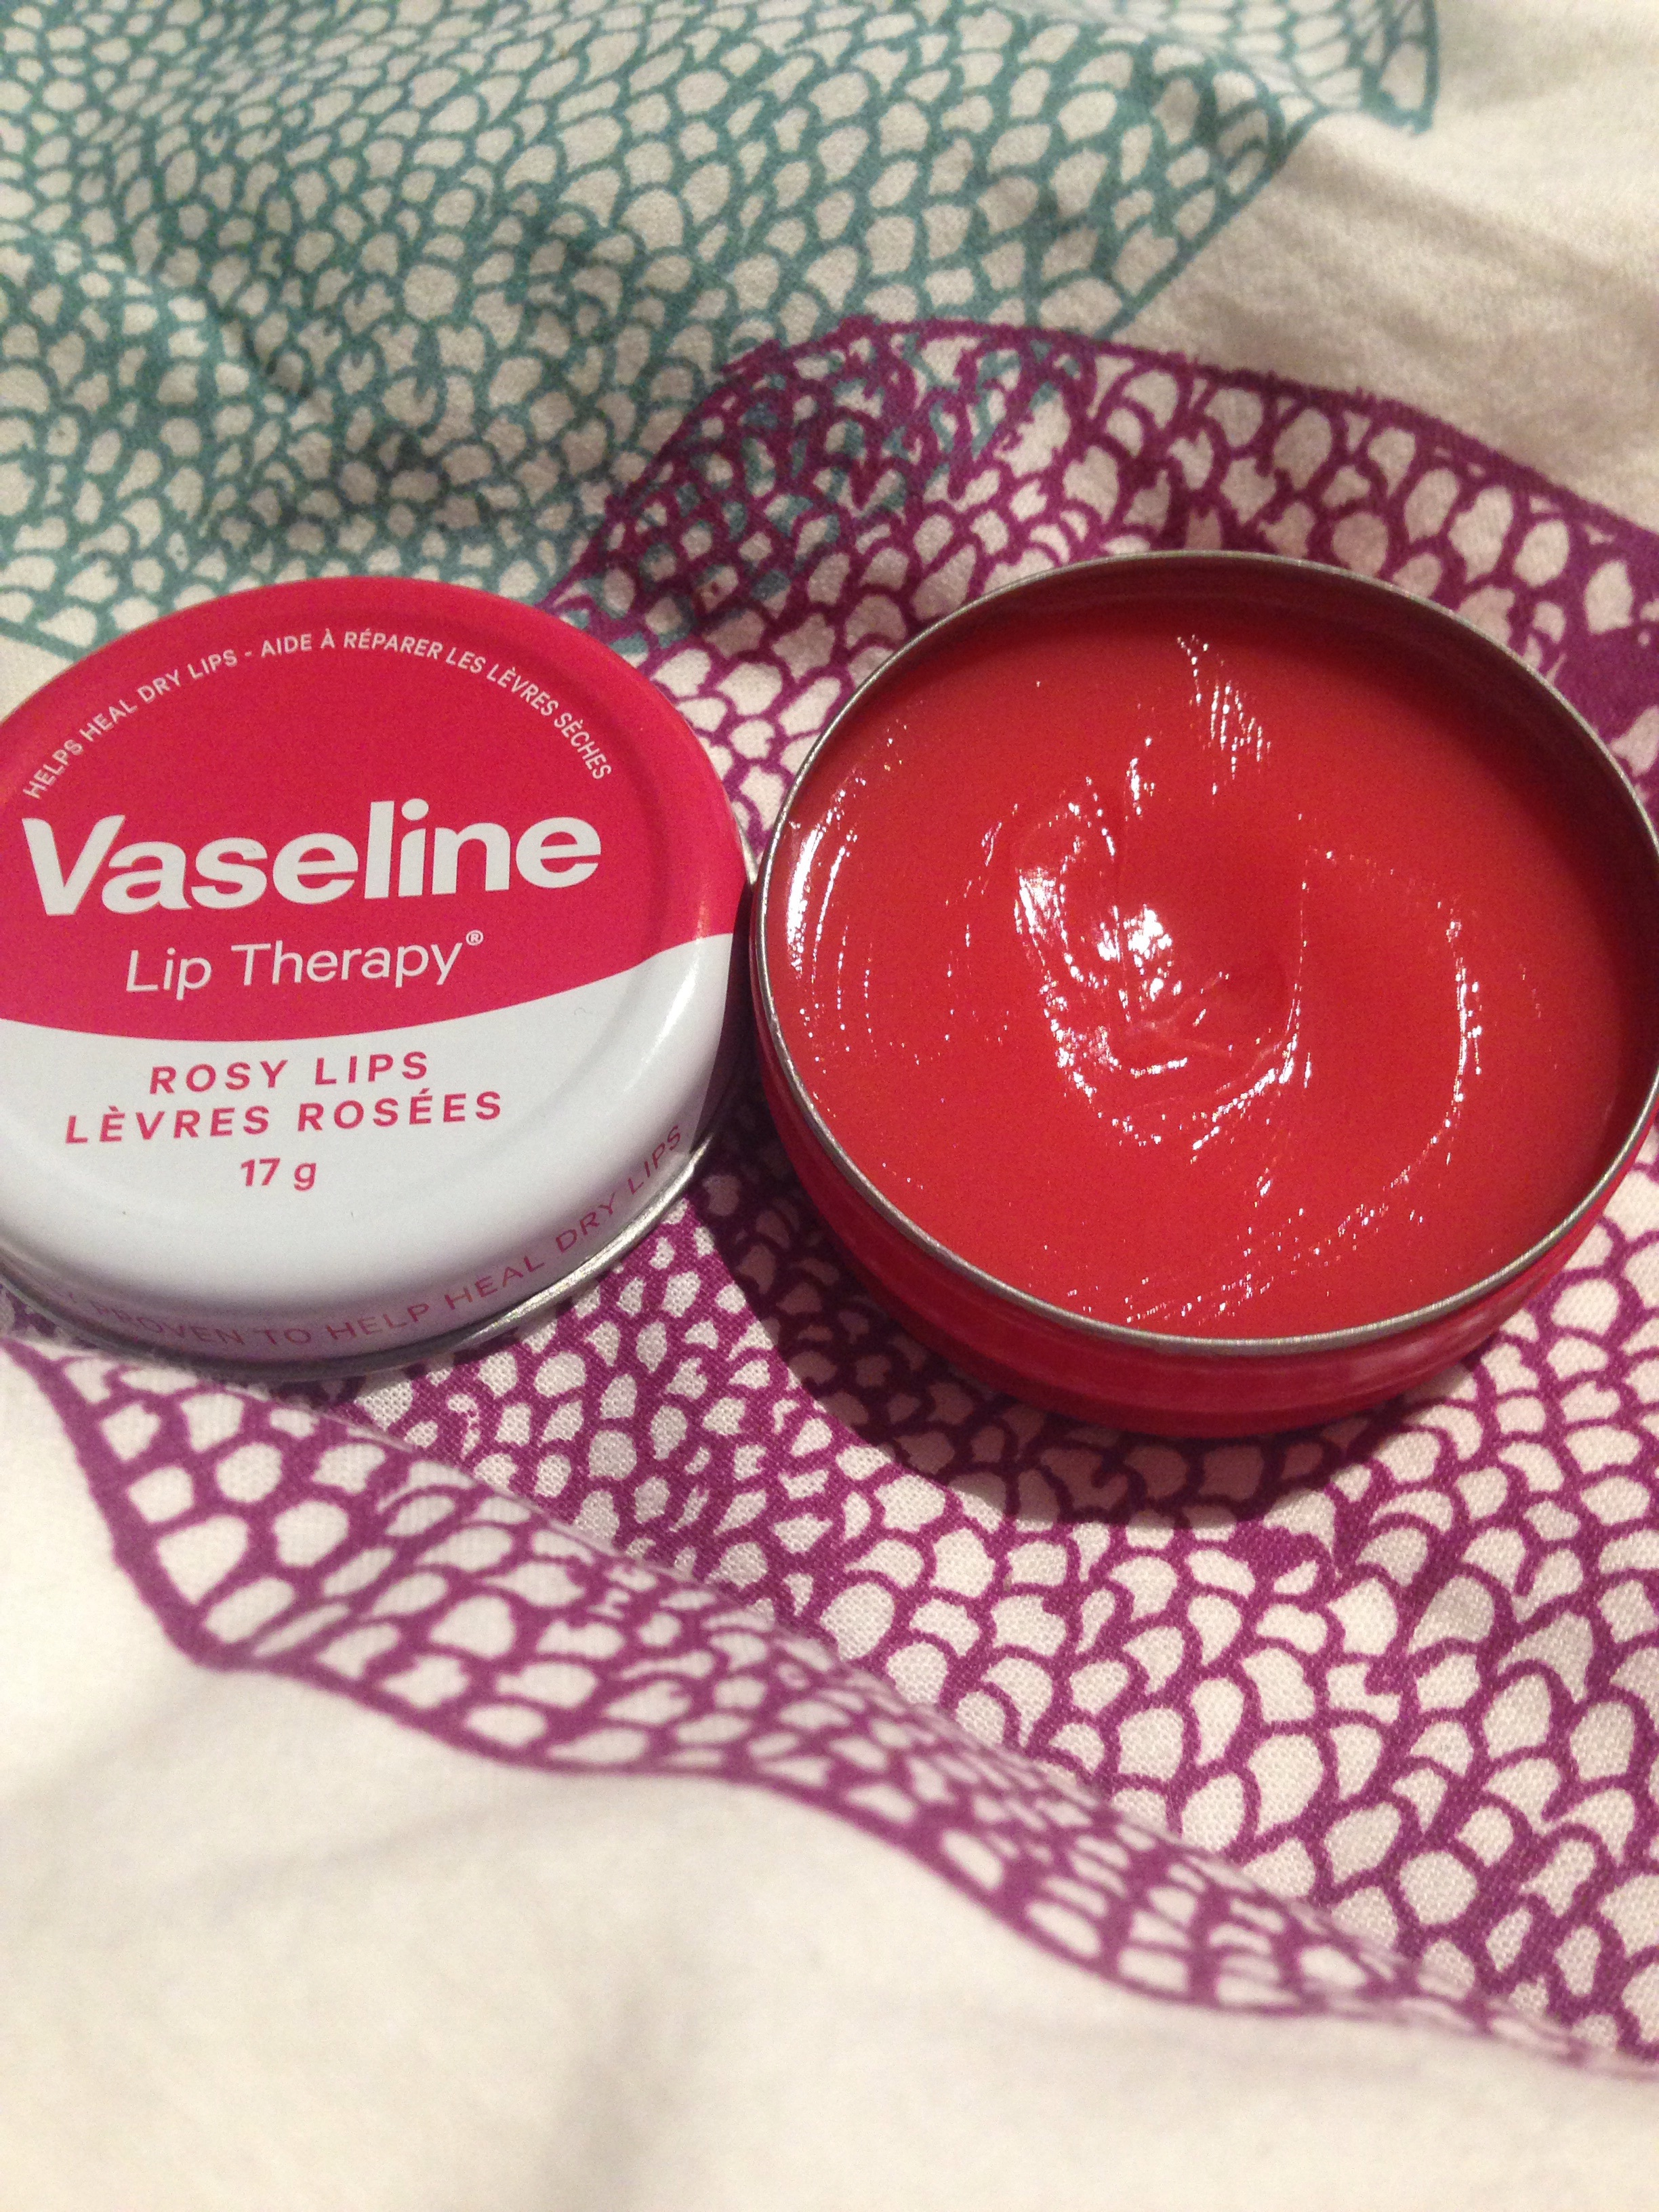 Rosy Lips Vaseline Fake Lip Balm Therapy Reviews In Balms Treatments